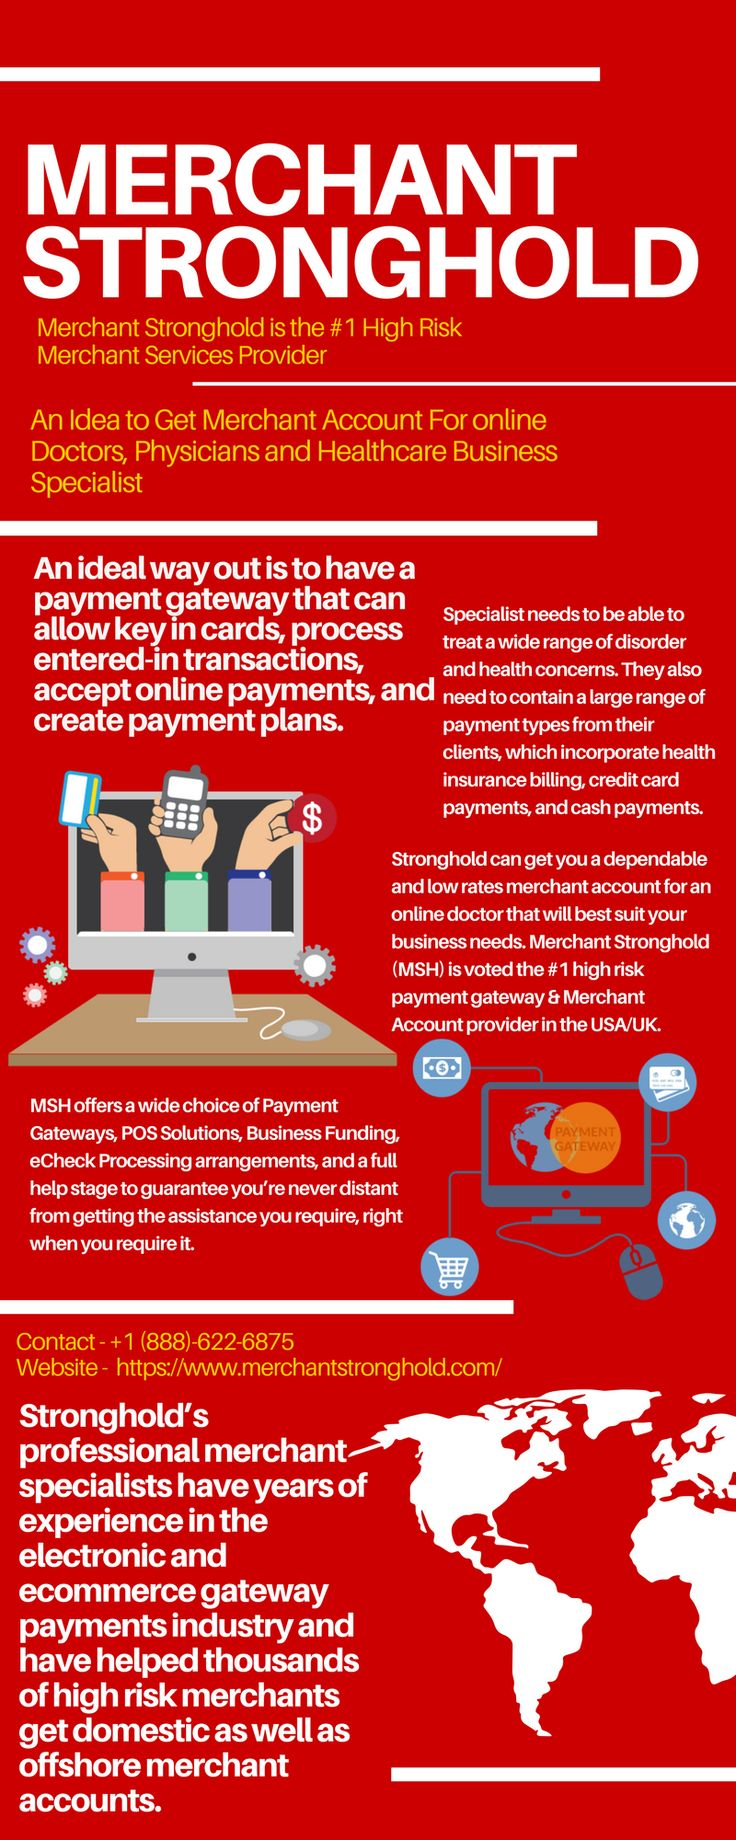 Best 25+ Merchant account ideas on Pinterest | Payday cake image ...